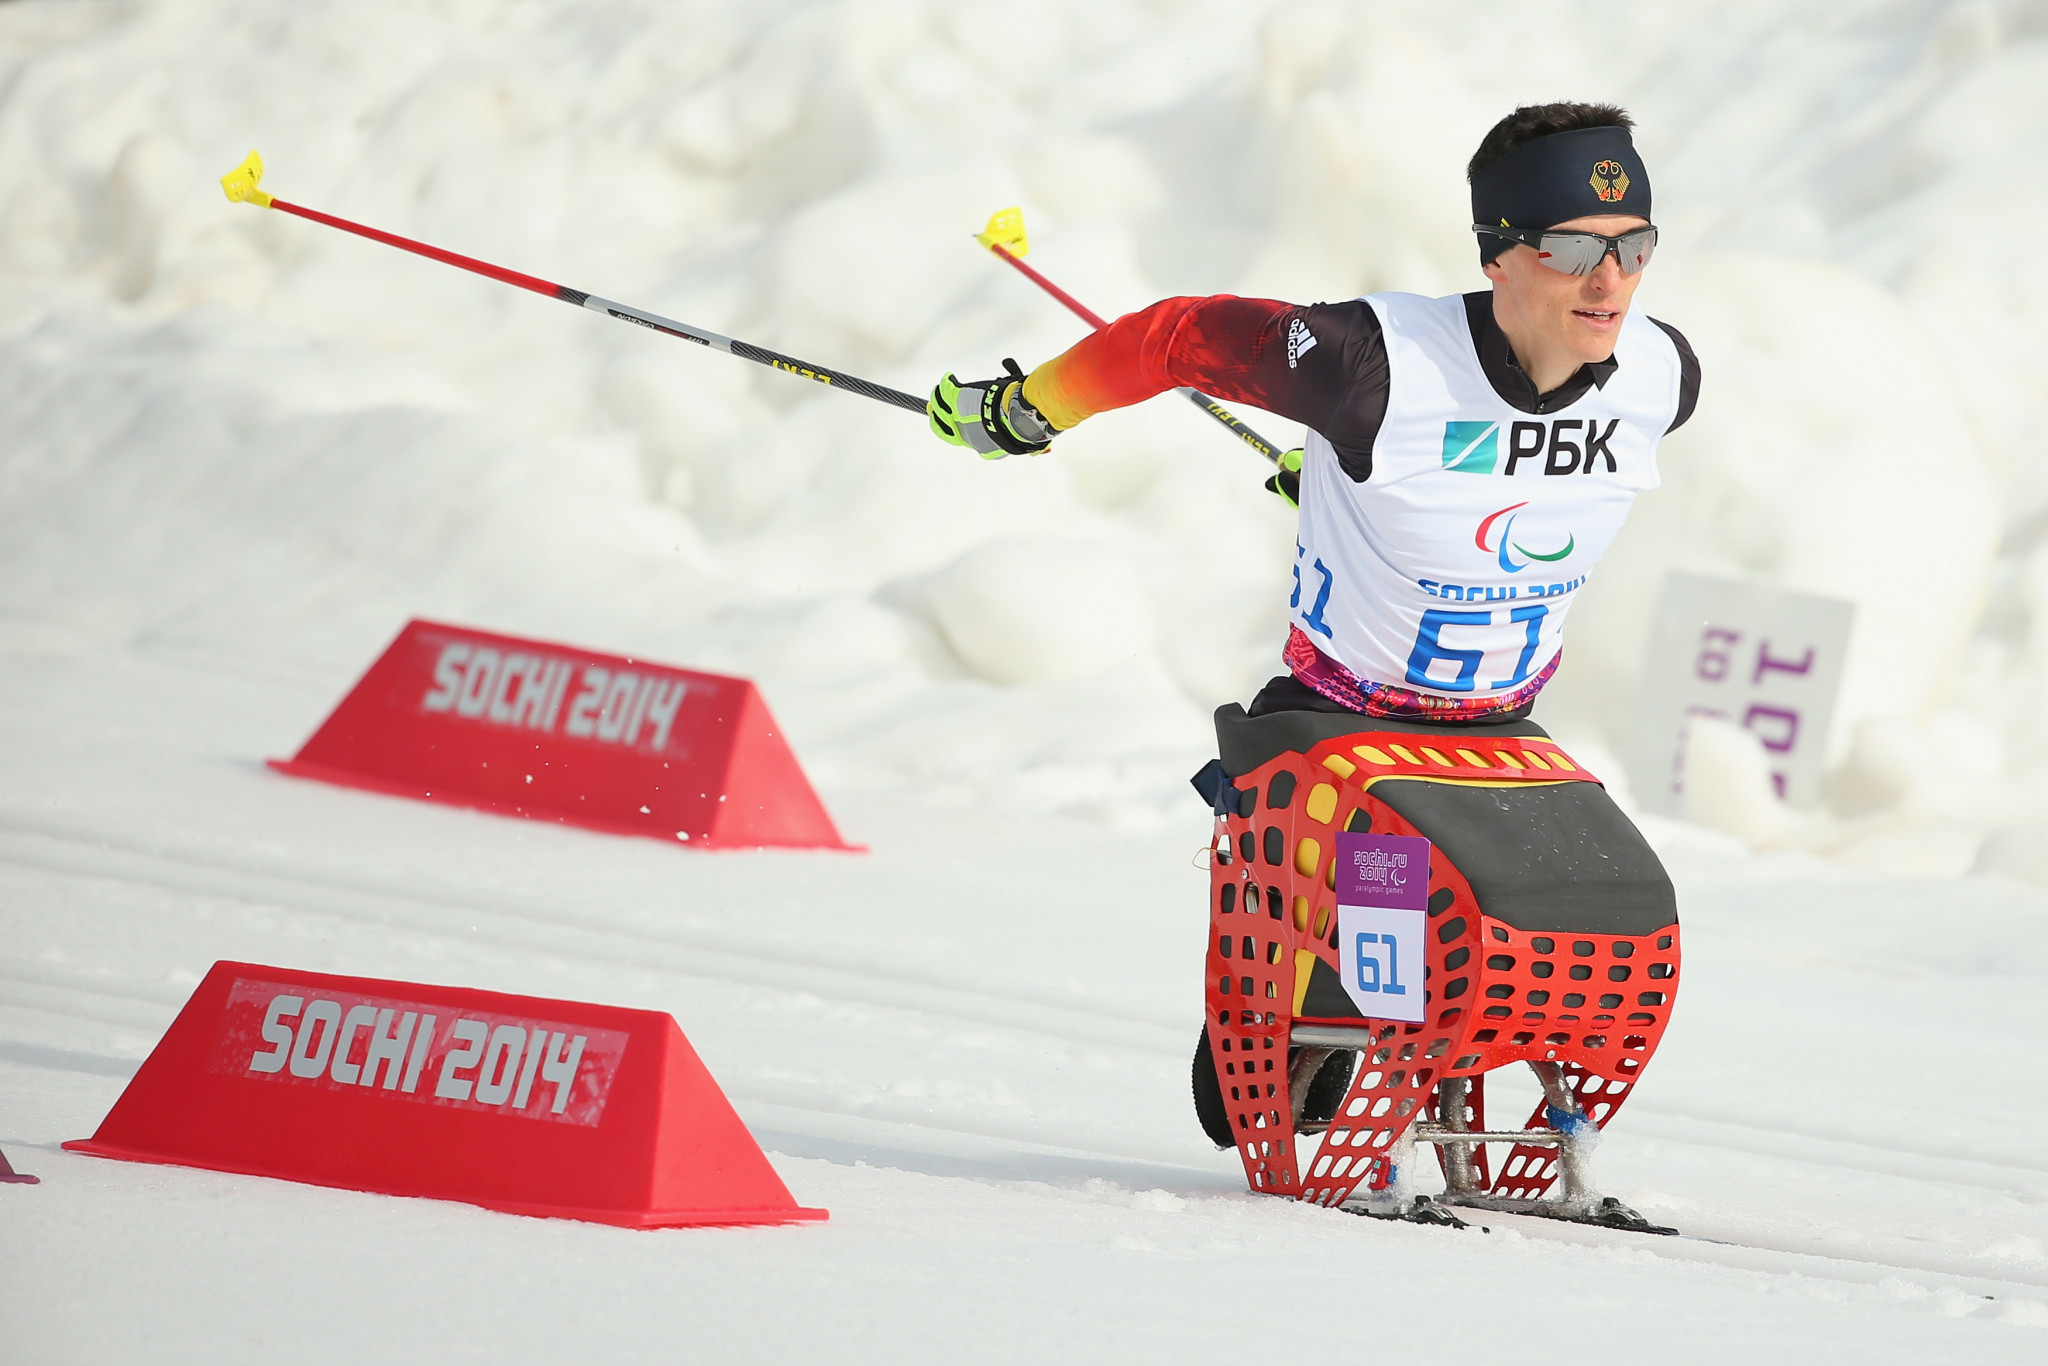 Home athletes set to dominate World Para Nordic Skiing World Cup in Oberried